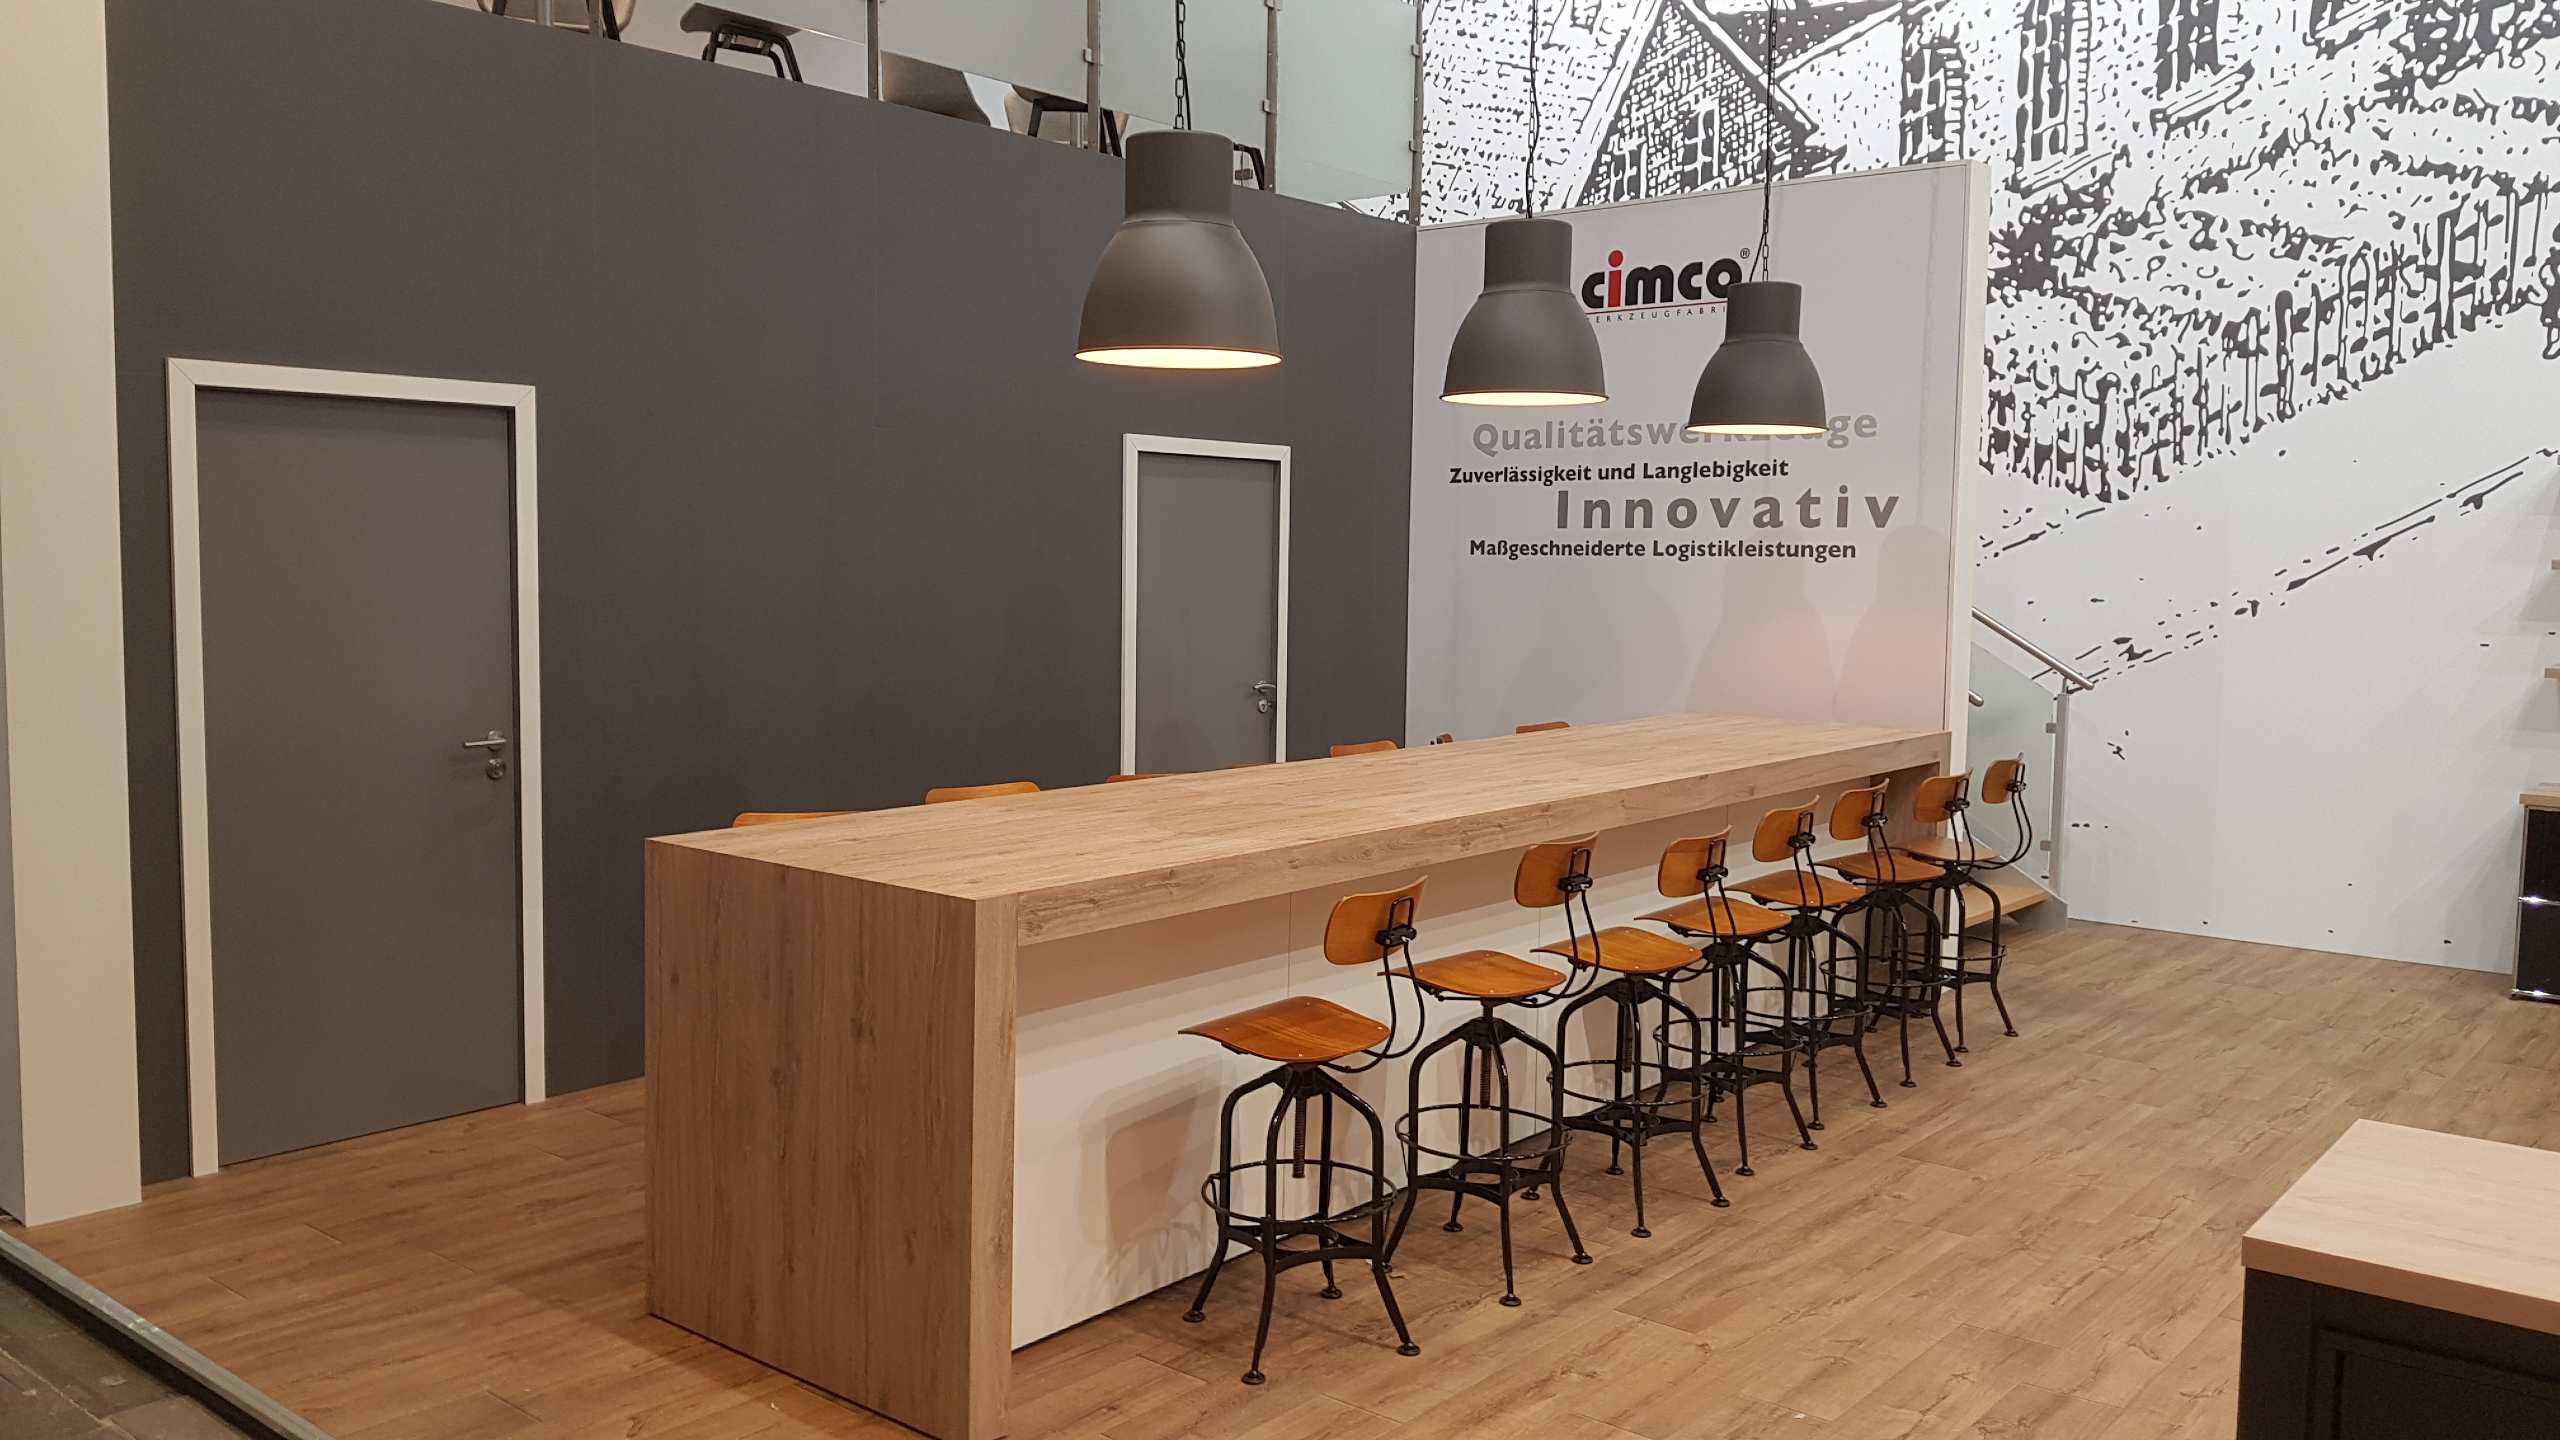 Cimco @ Light & Building 2018